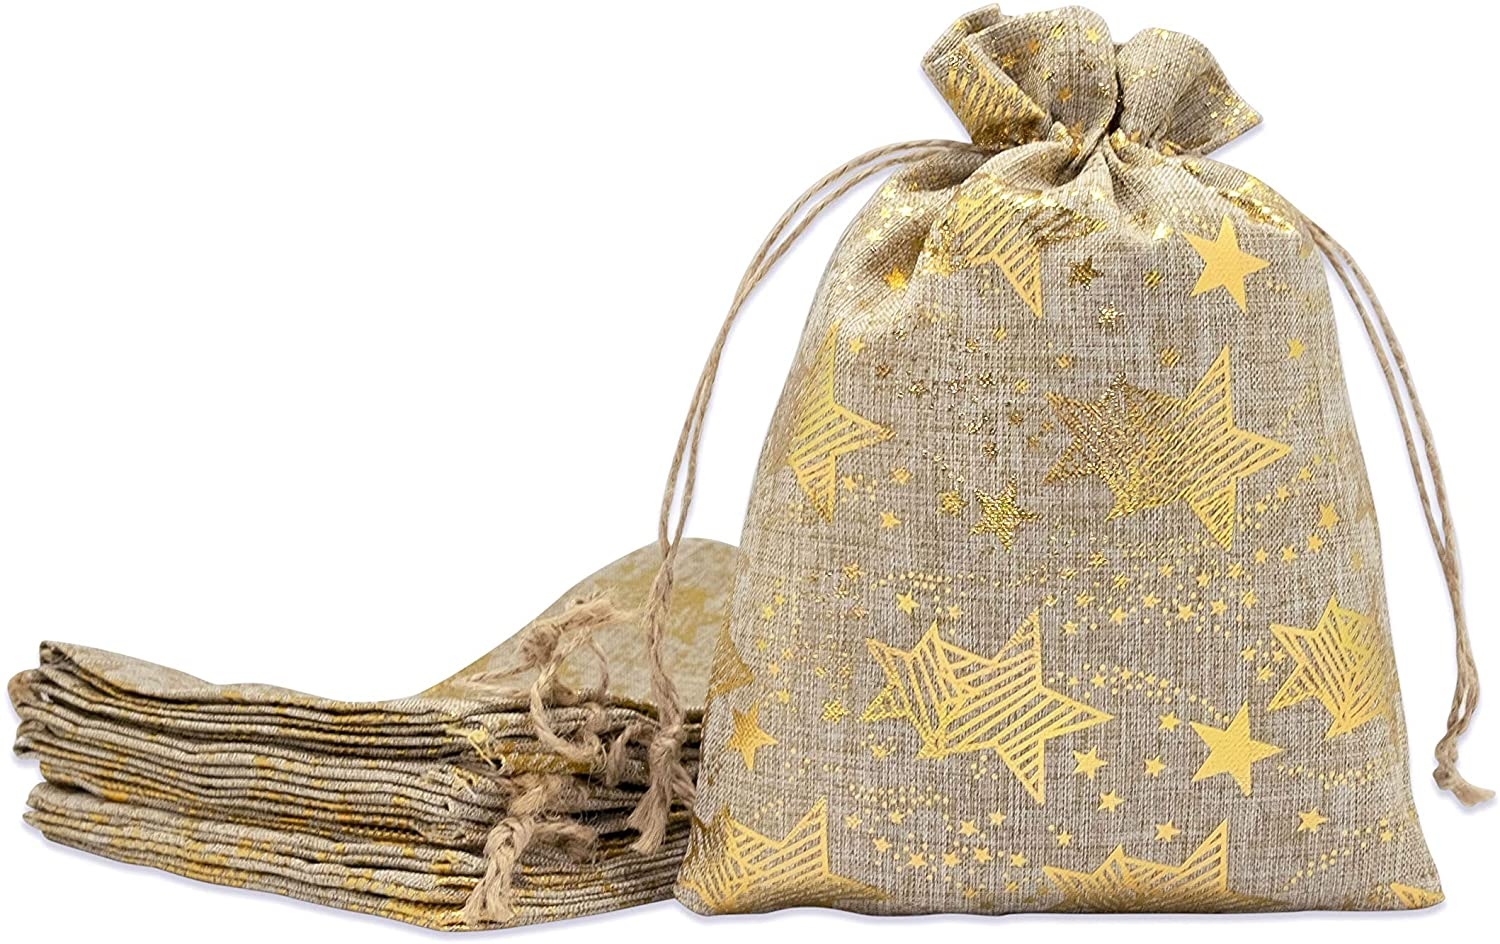 48pk 12x16 Jute Burlap Linen Canvas Gift Bags with Drawstring for Presents, Party Favors, Samples (Golden Stars, Extra Large) by TheDisplayGuys